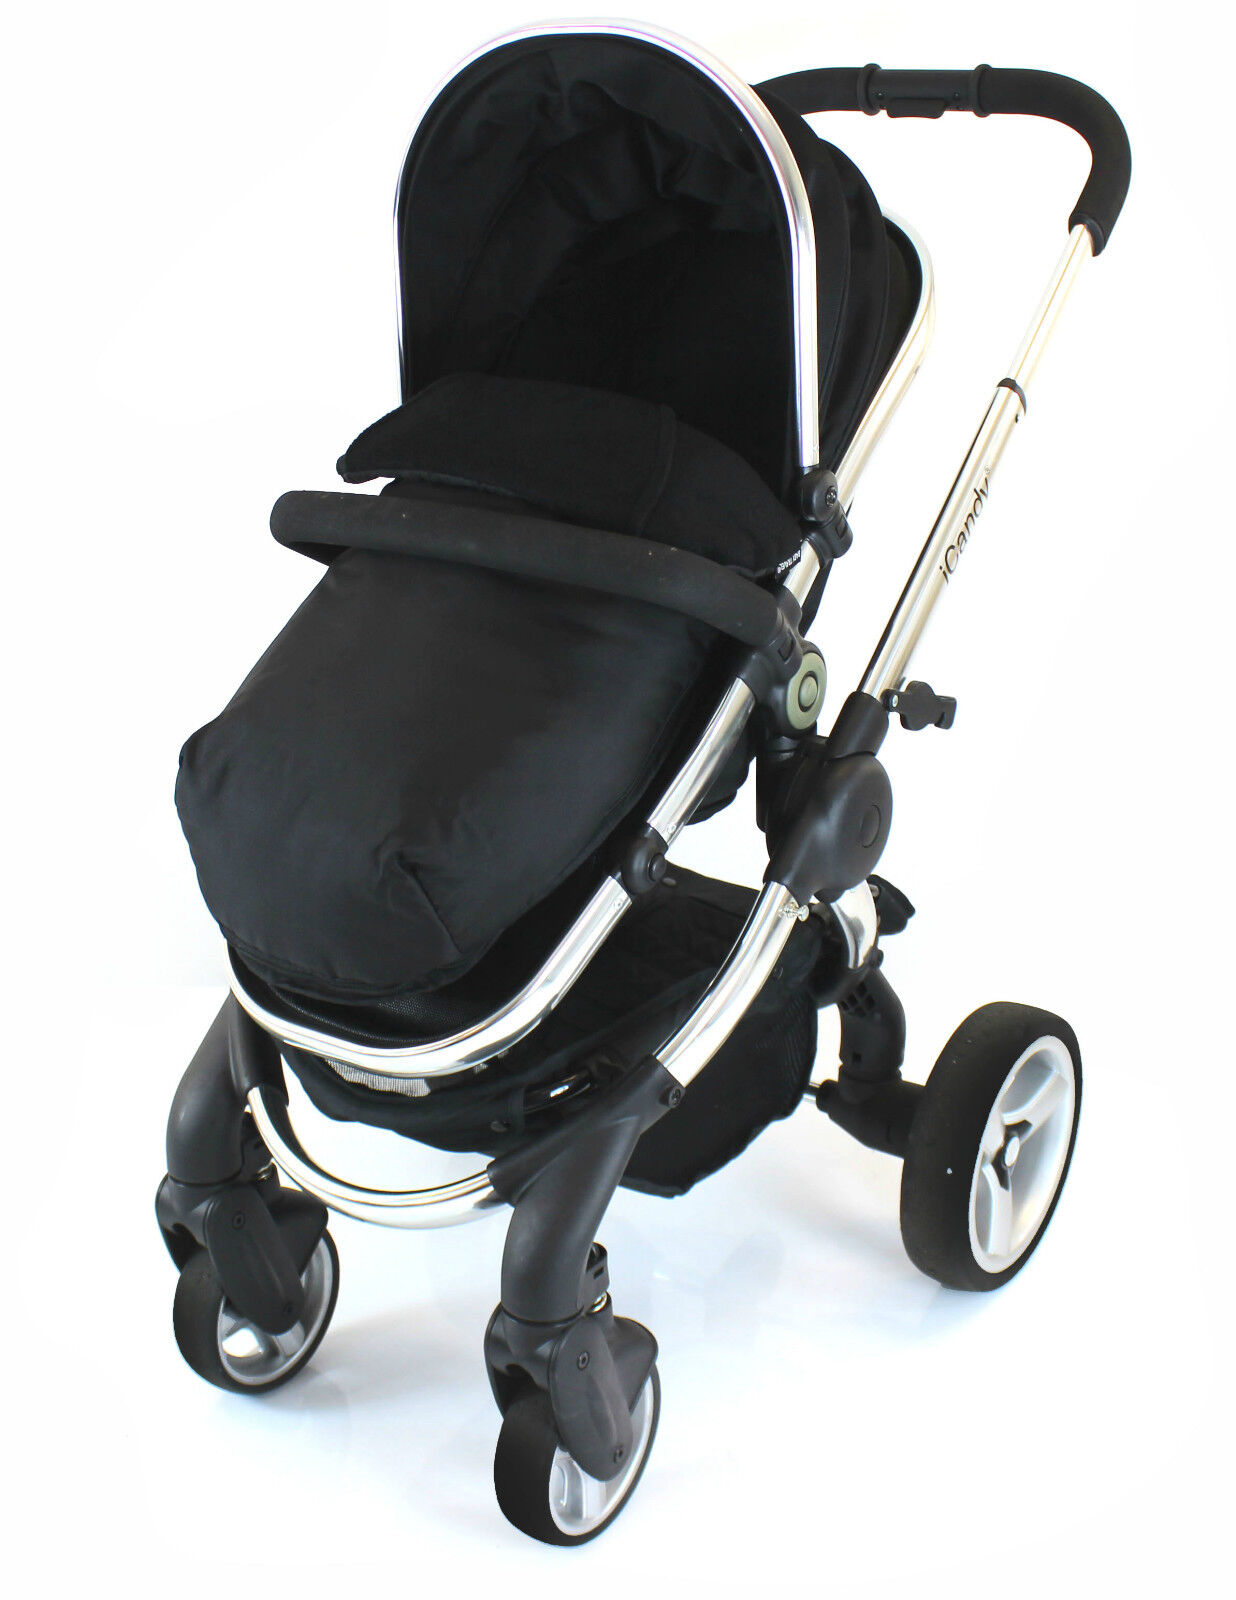 Cheap Icandy Travel System Lifehacked1st Com